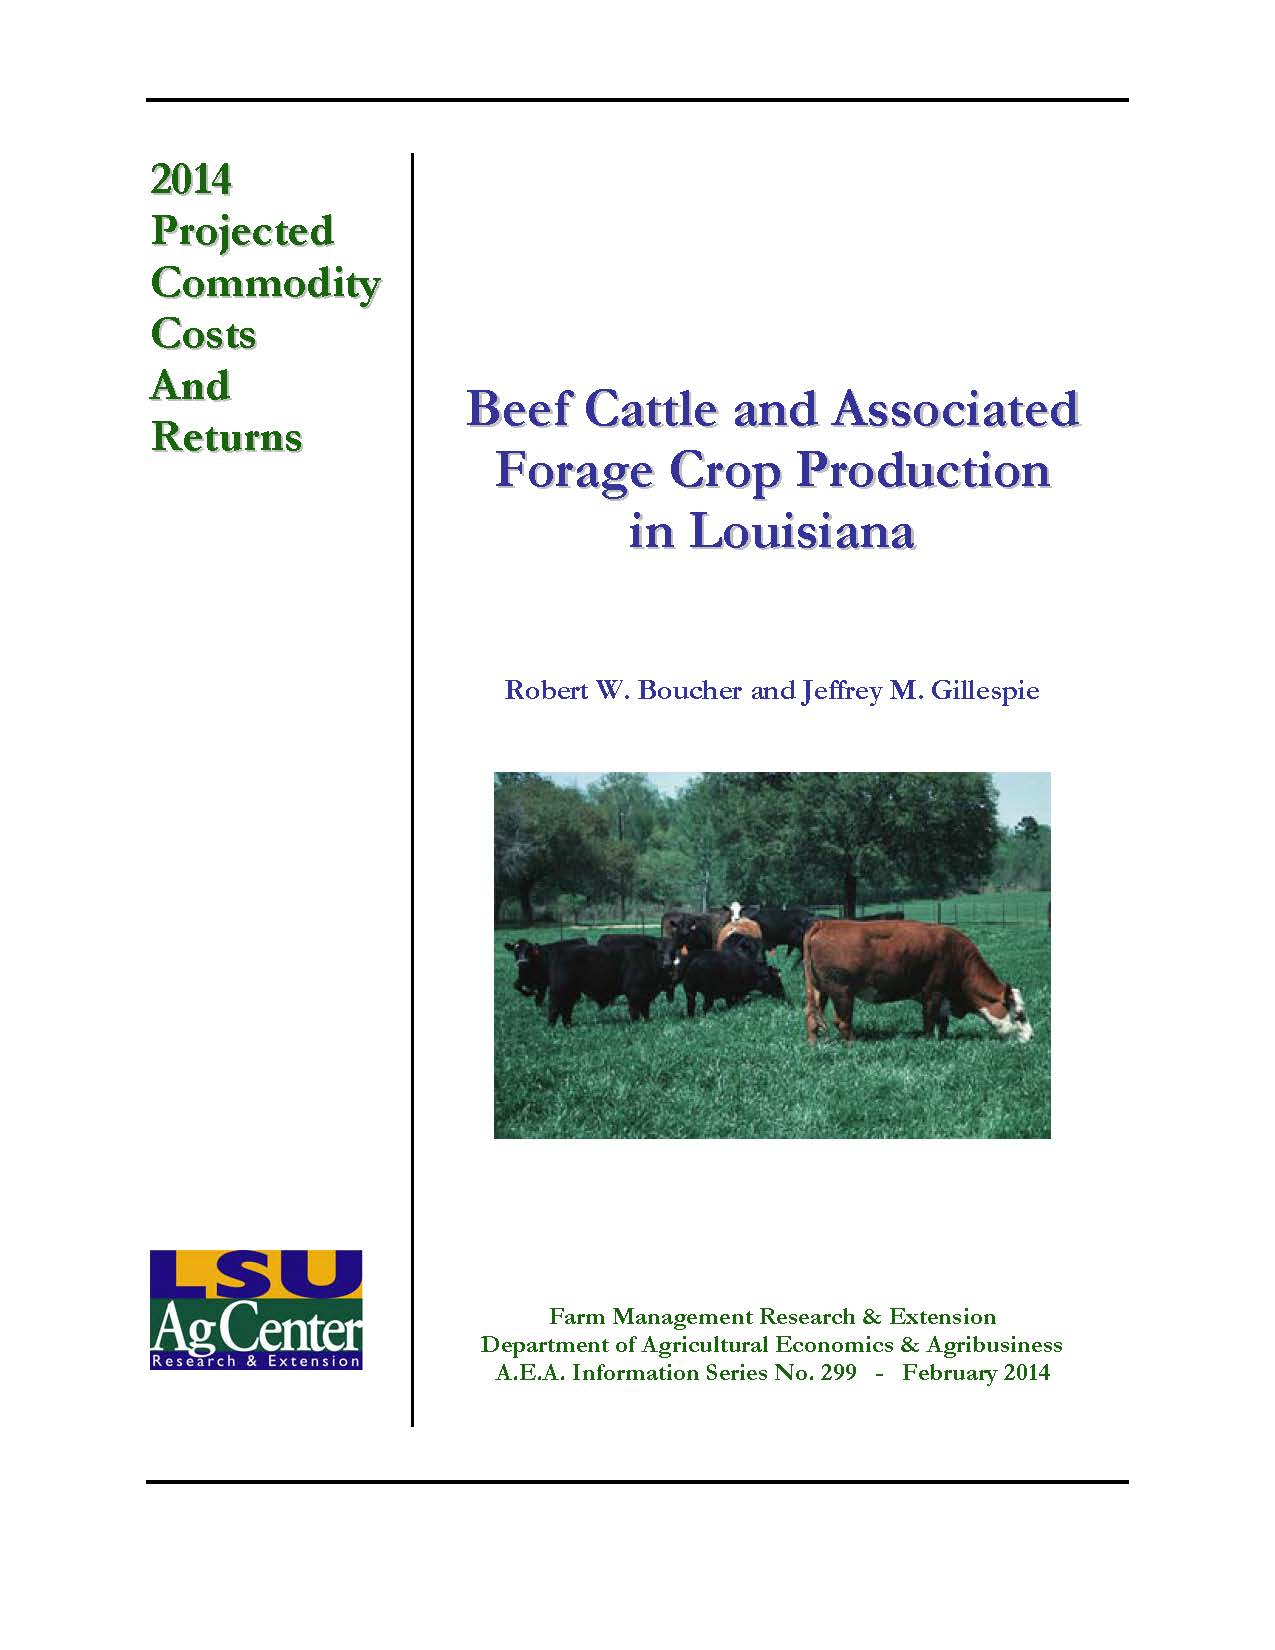 Projected Costs and Returns For Beef Cattle and Associated Forage Crops in Louisiana 2014.